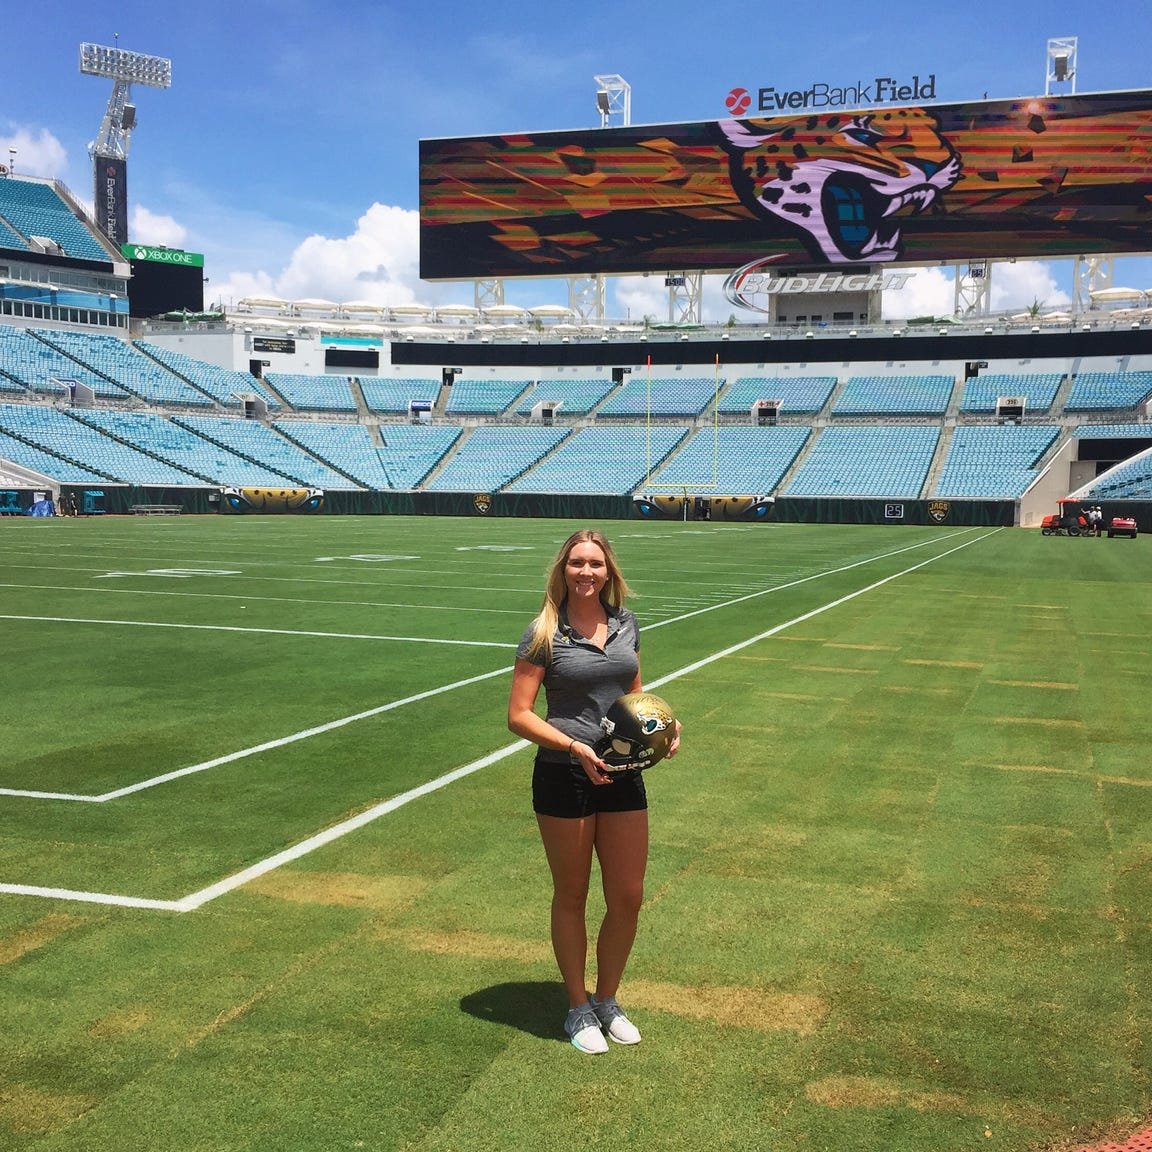 2013 Mansfield Senior grad Victoria Leahy got her first big break as an intern for the Jacksonville Jaguars.